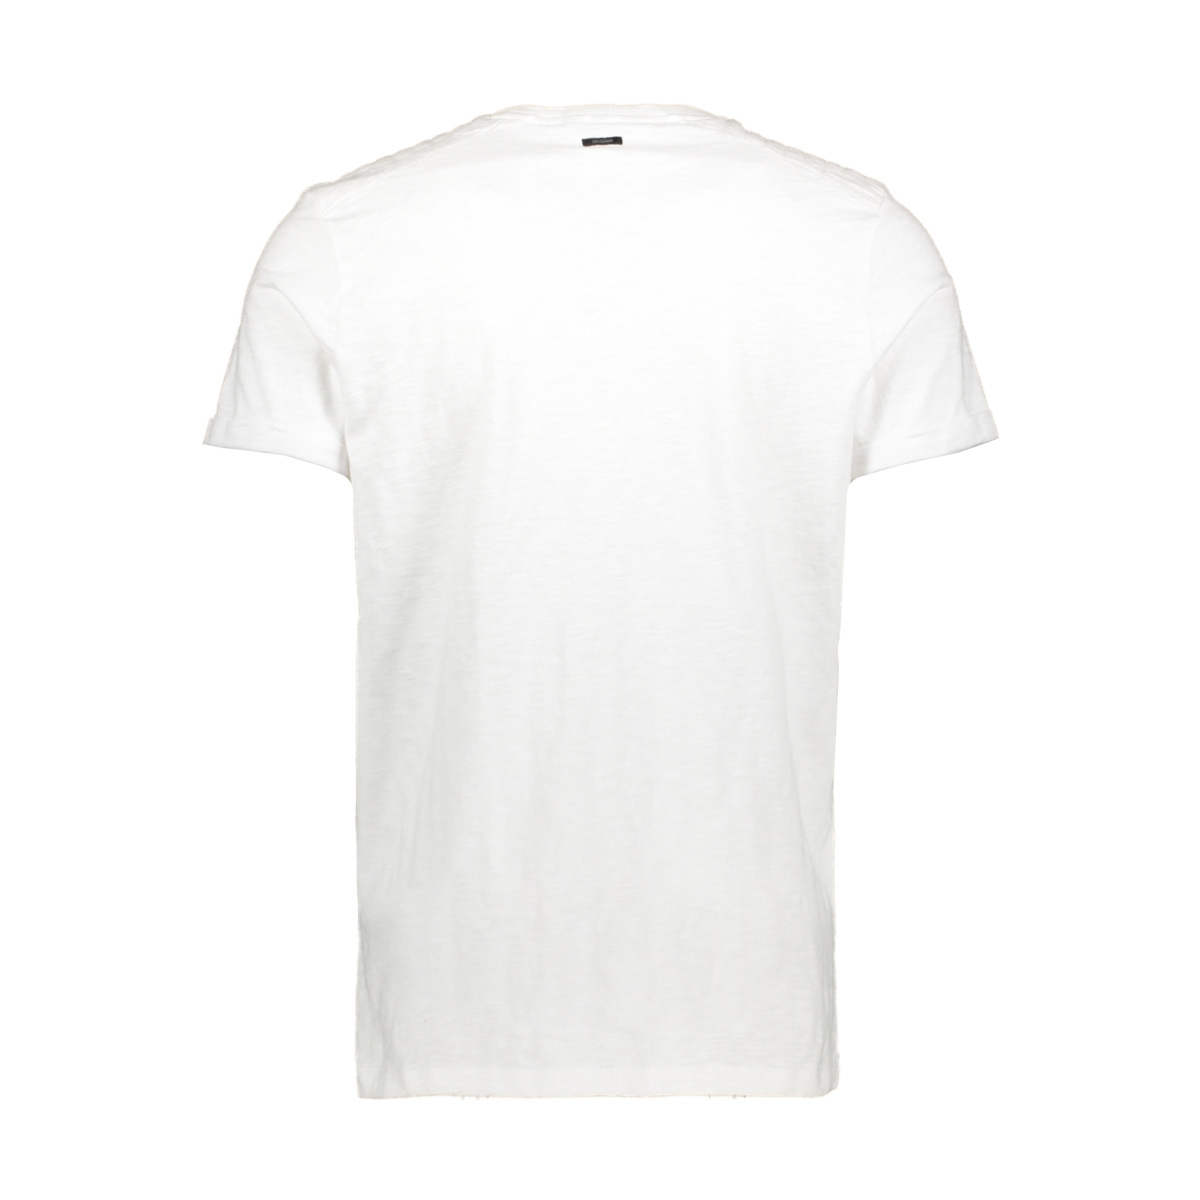 r neck t shirt vtss202530 vanguard t-shirt 7003